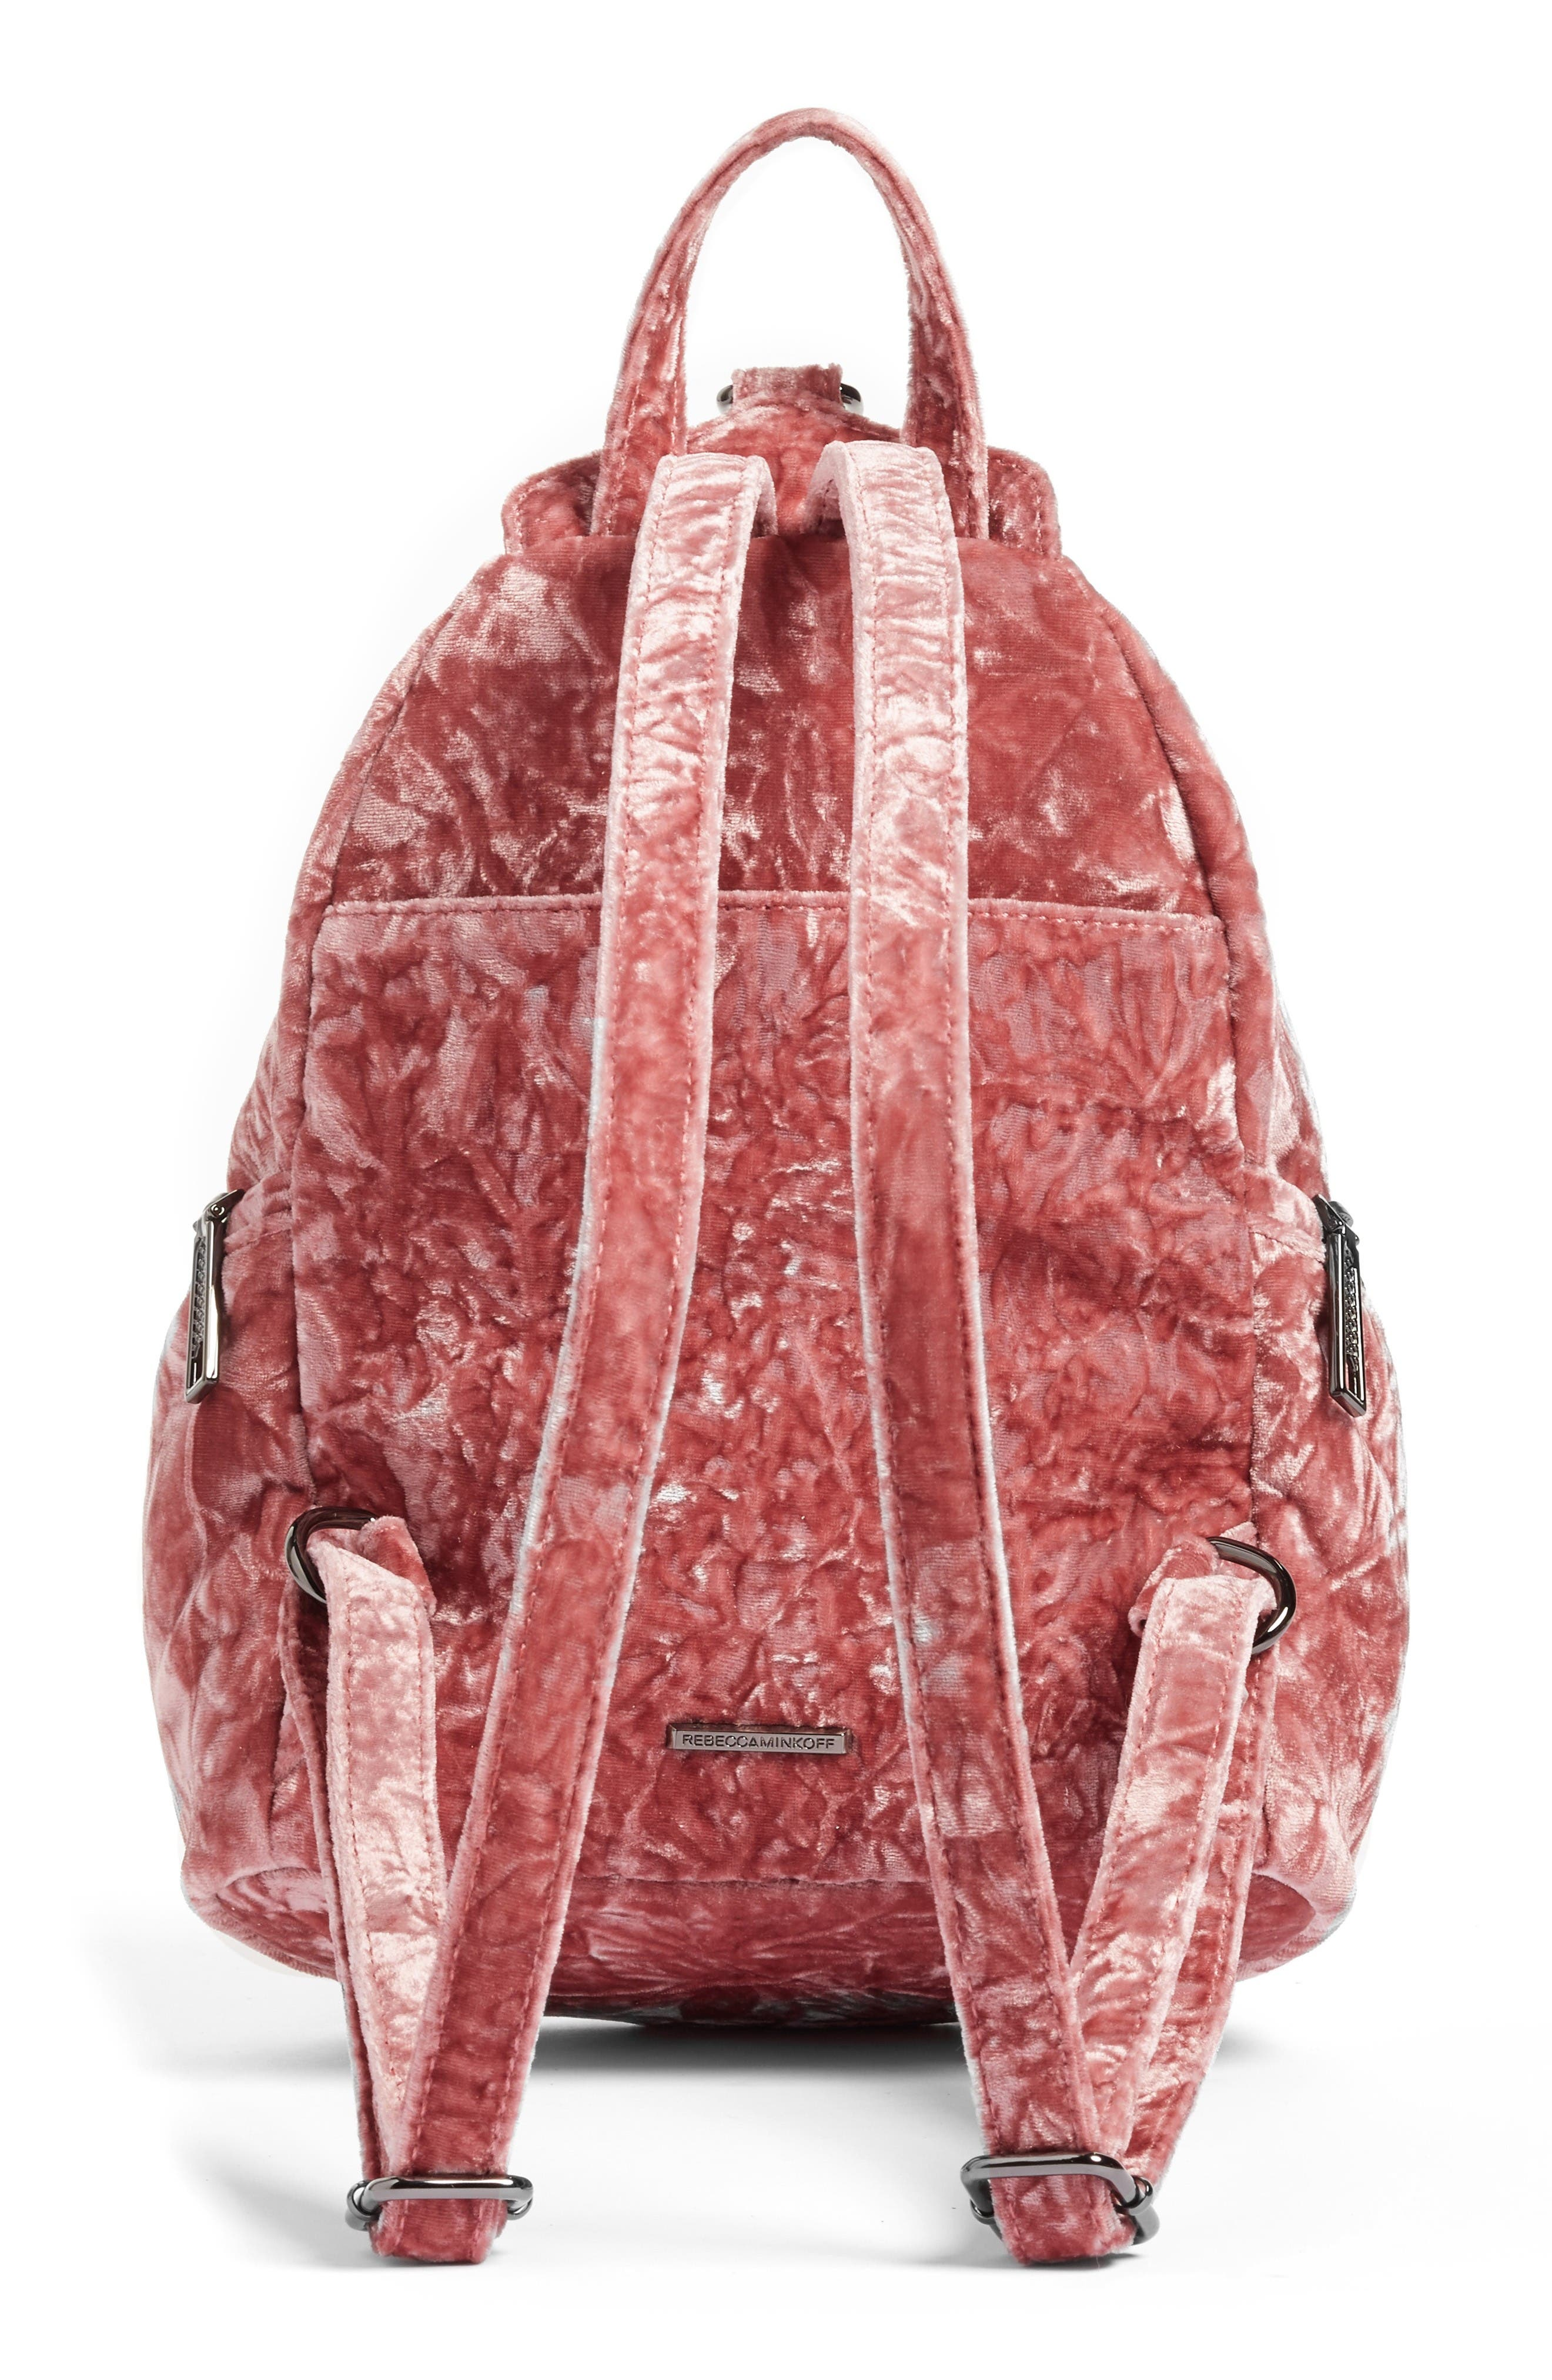 Medium Julian Velvet Backpack,                             Alternate thumbnail 4, color,                             Pink Velvet/ Gunmetal Hardware